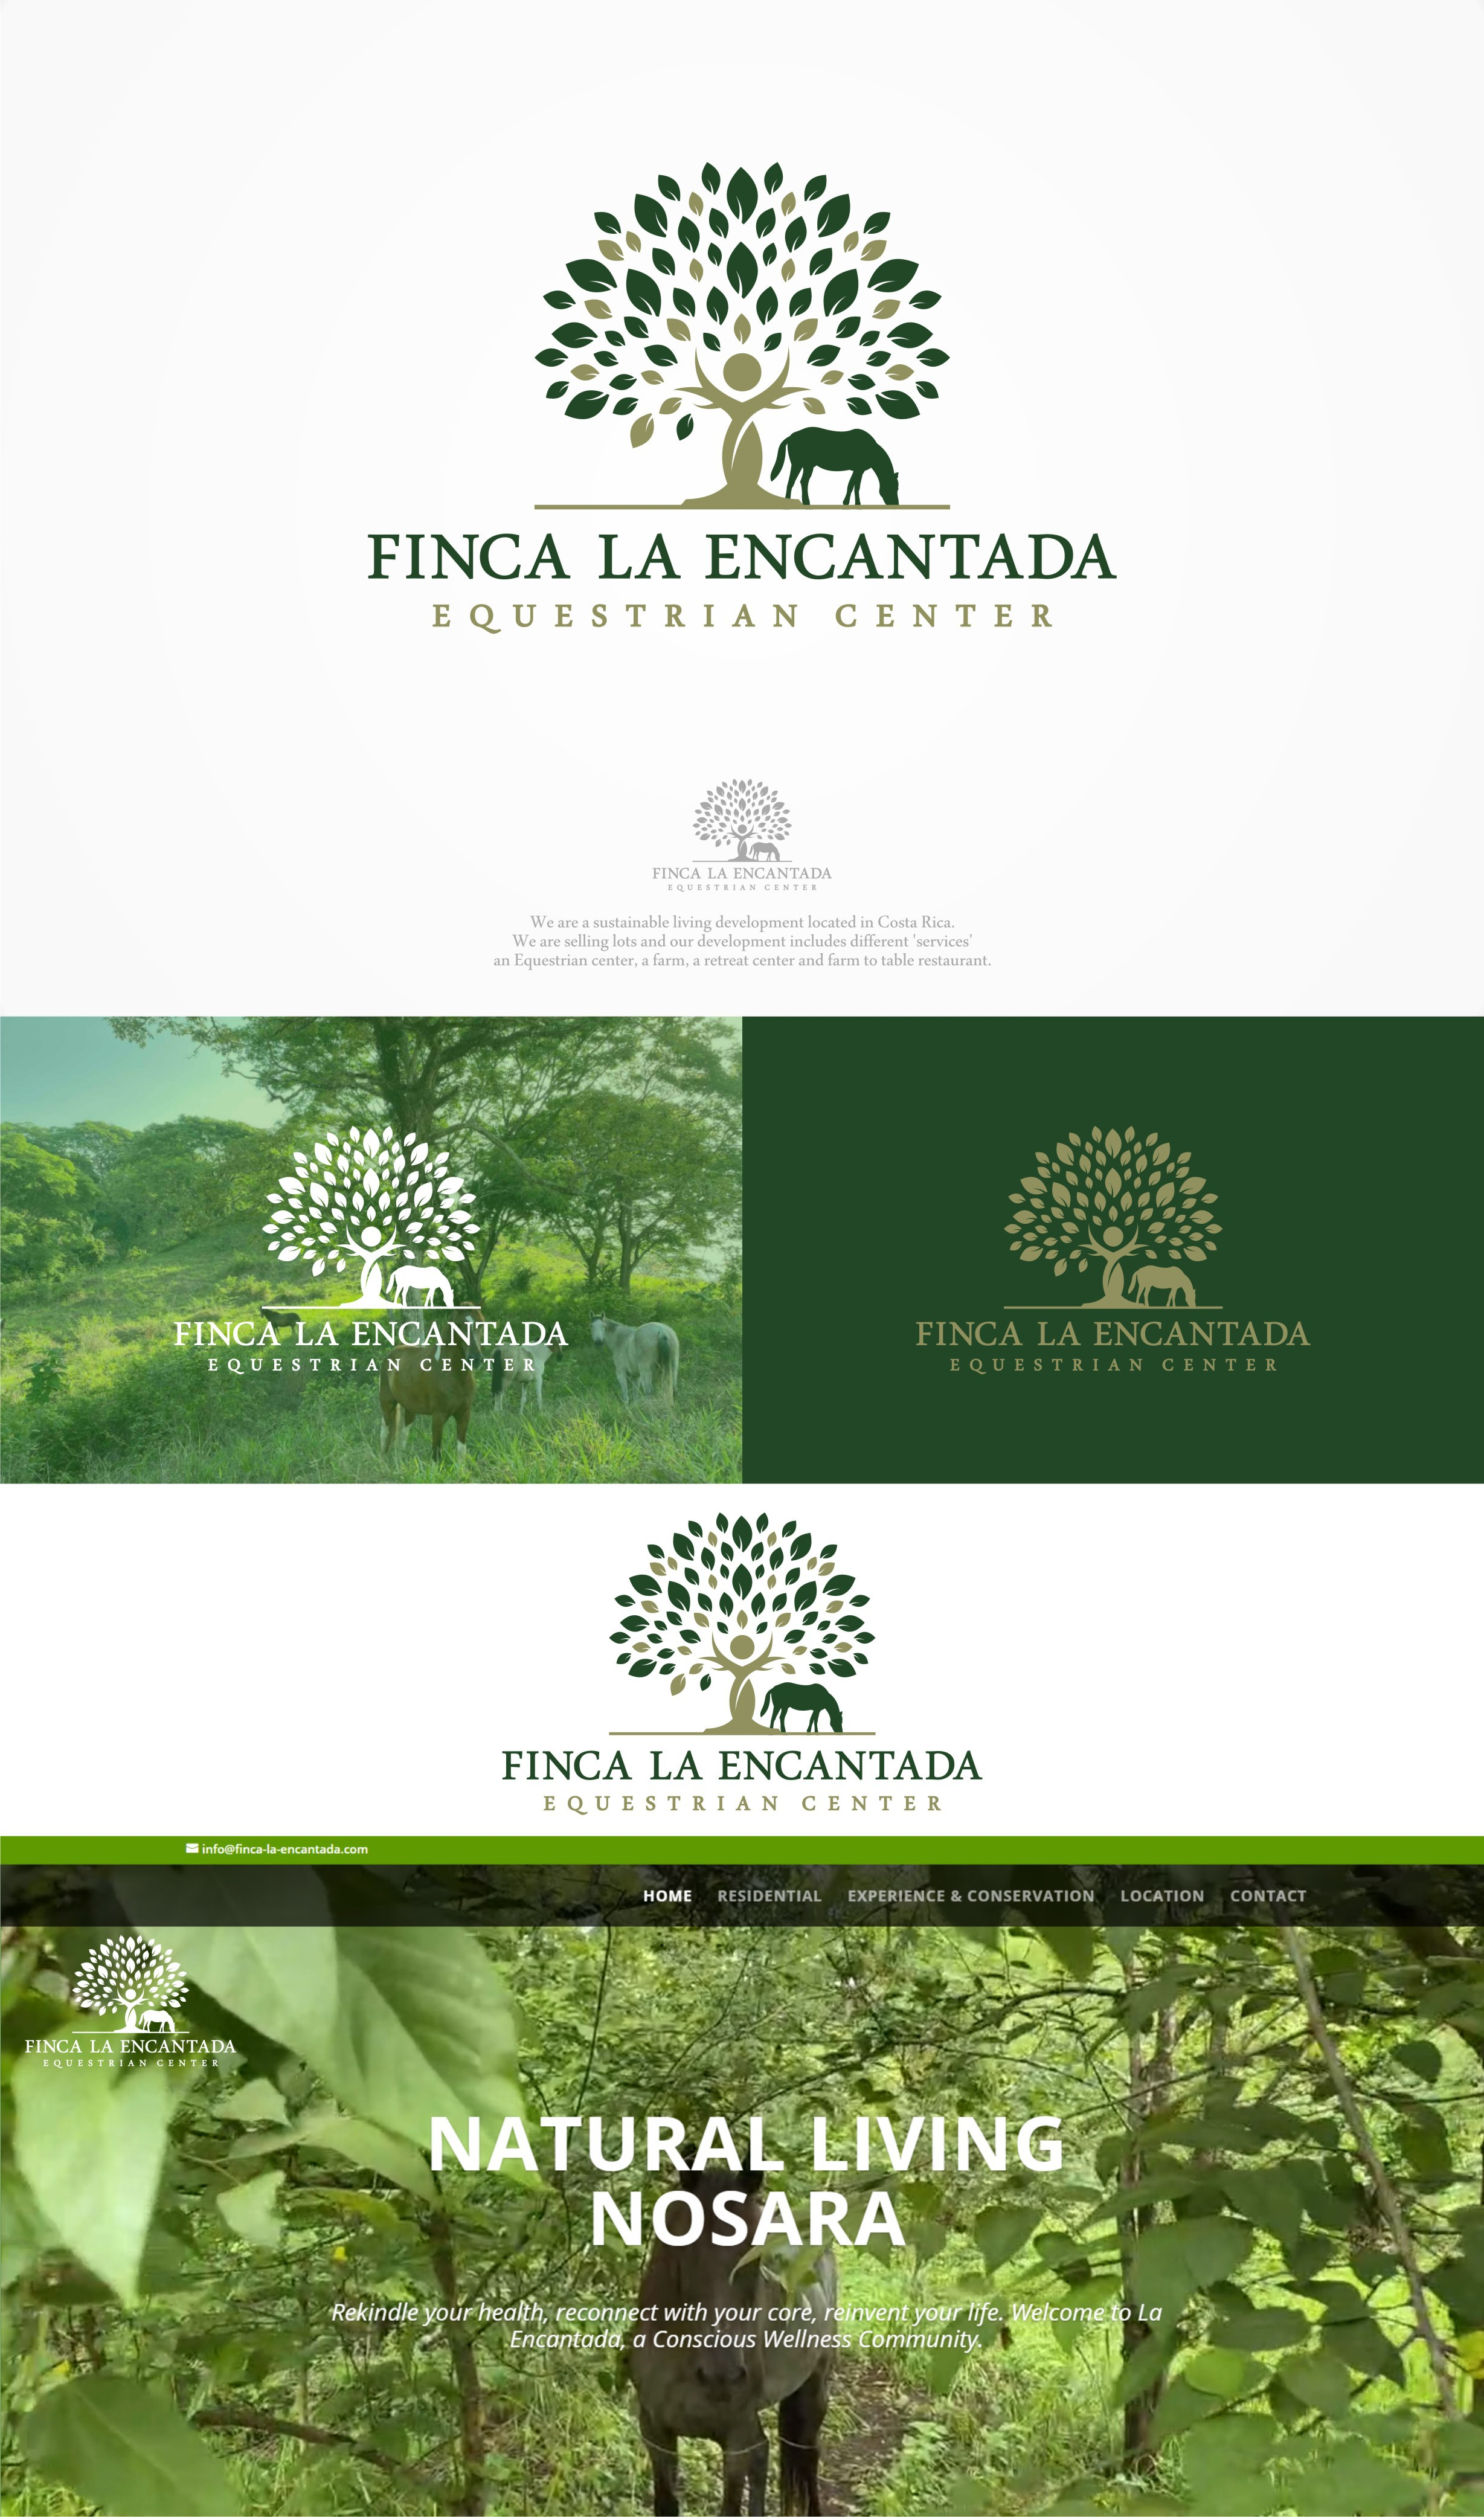 Logo for a Natural Living development proyect